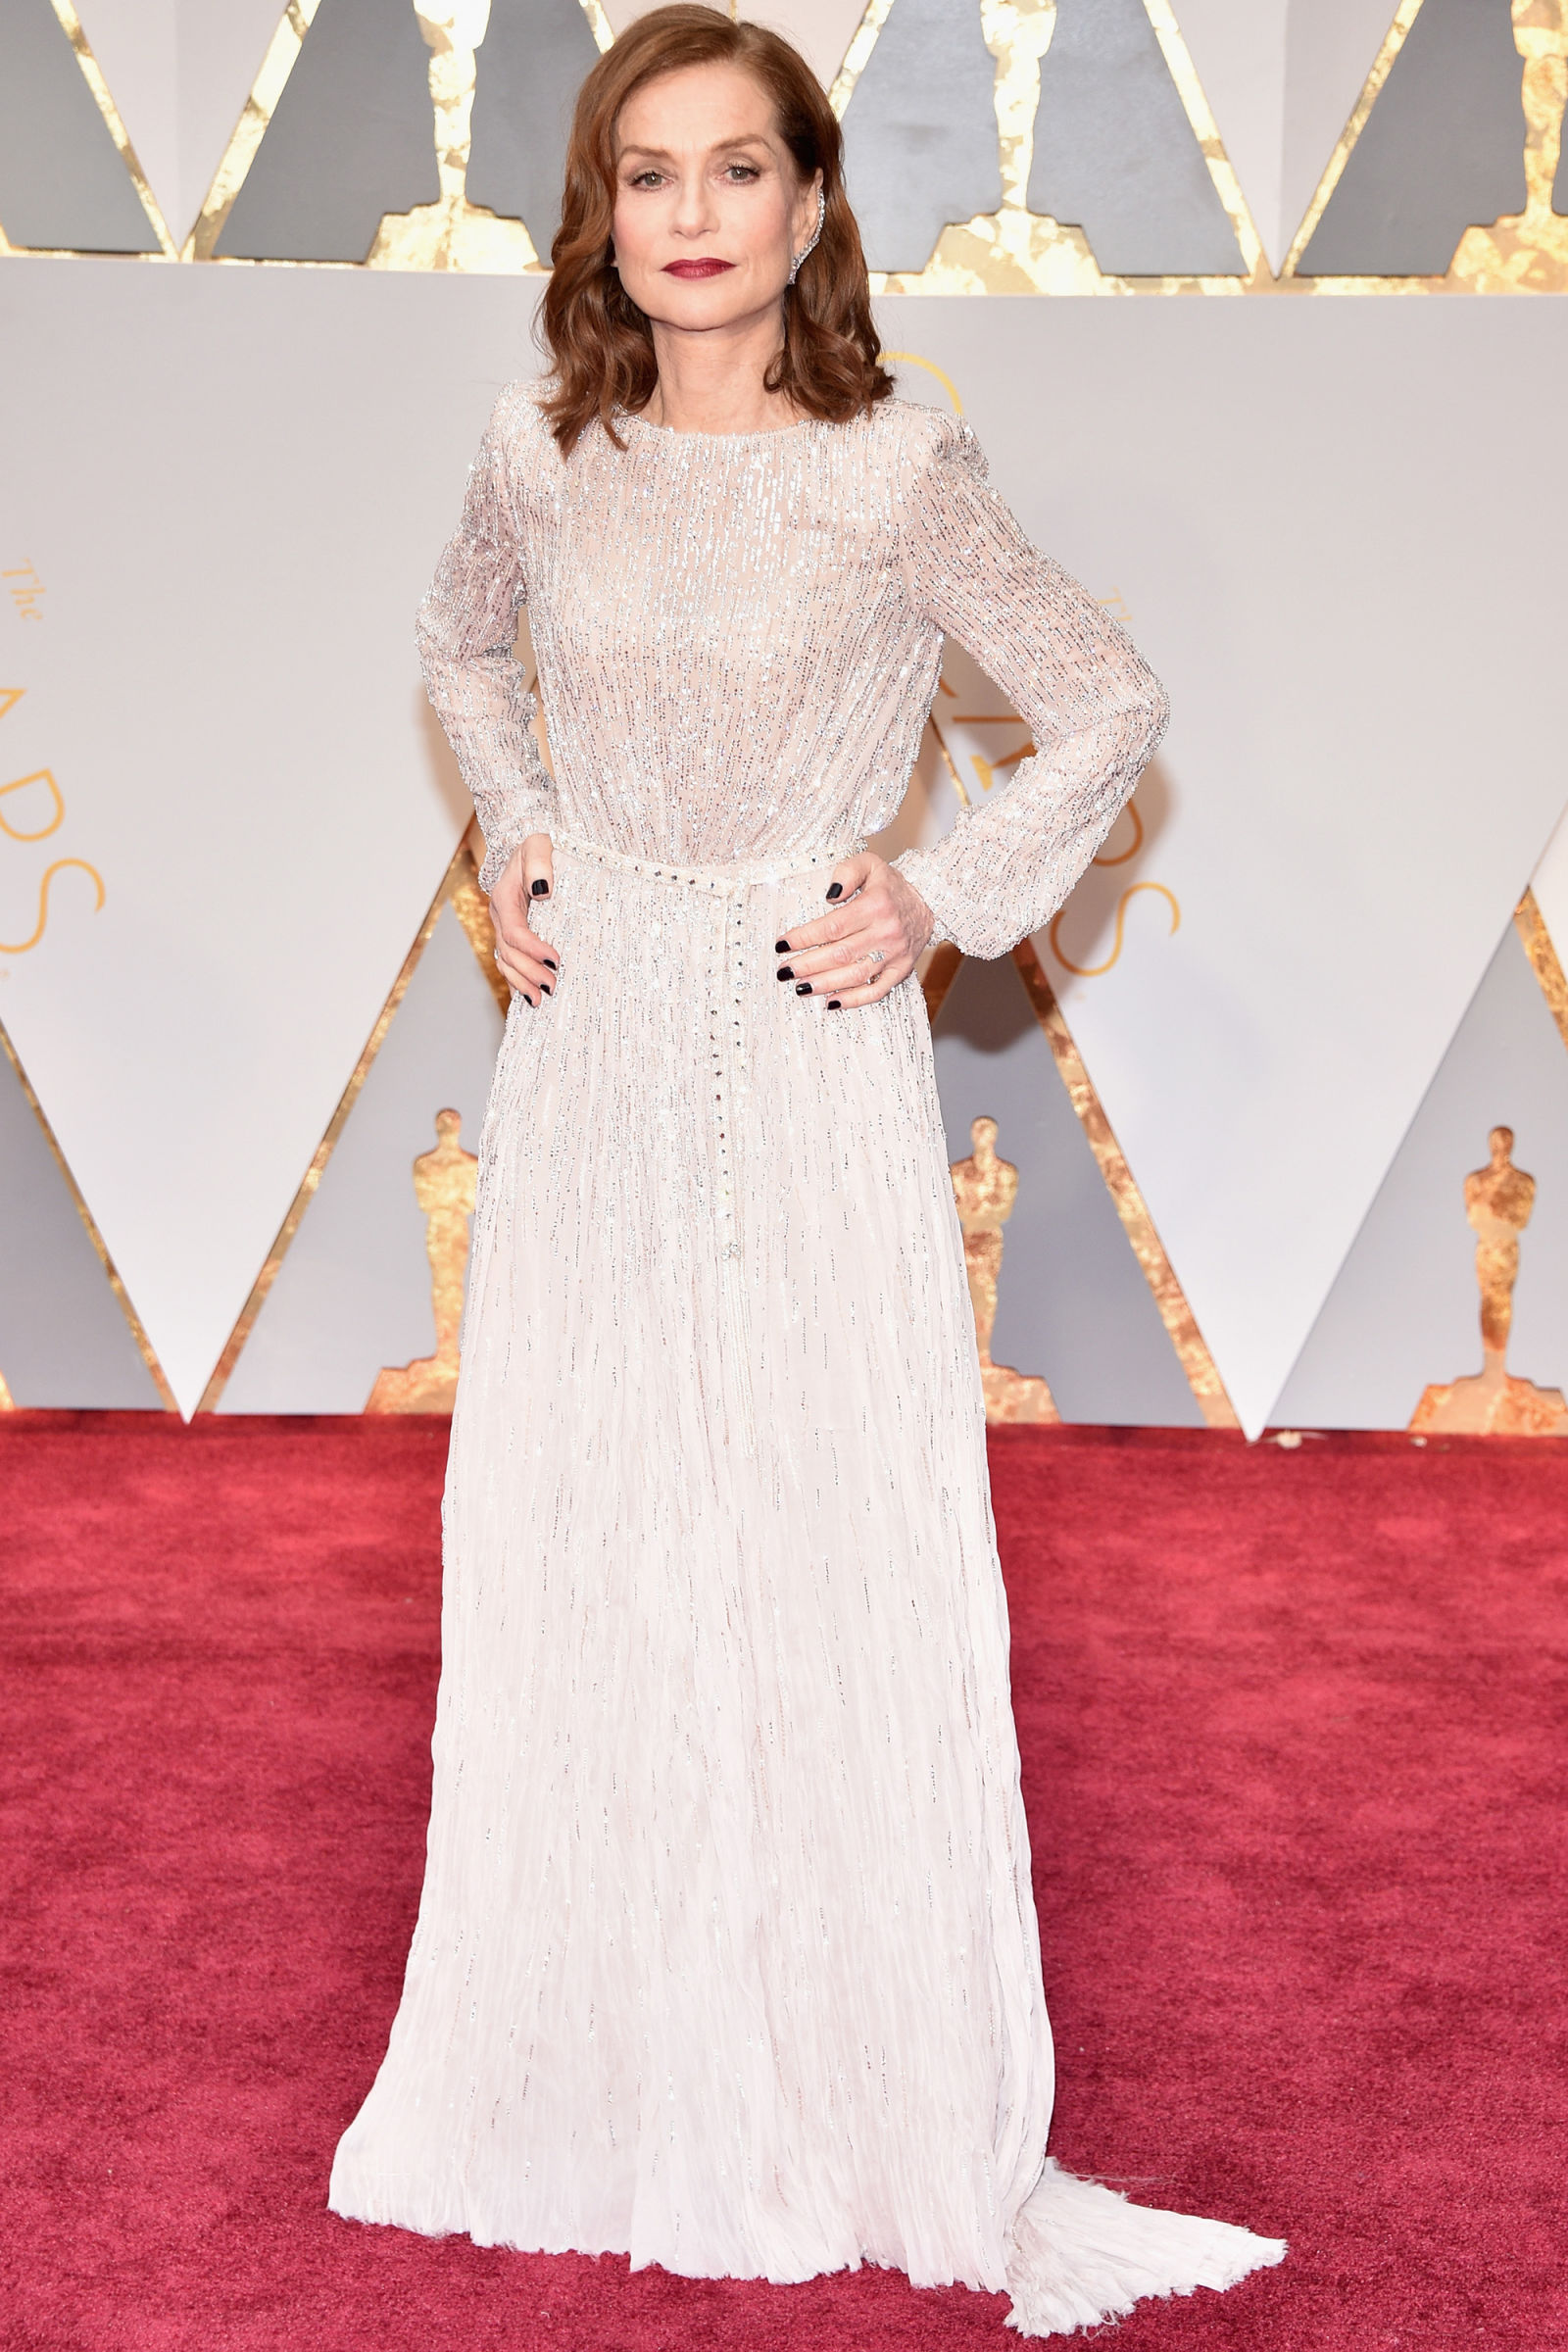 ISABELLE HUPPERT Hairstyles 2017 Oscars